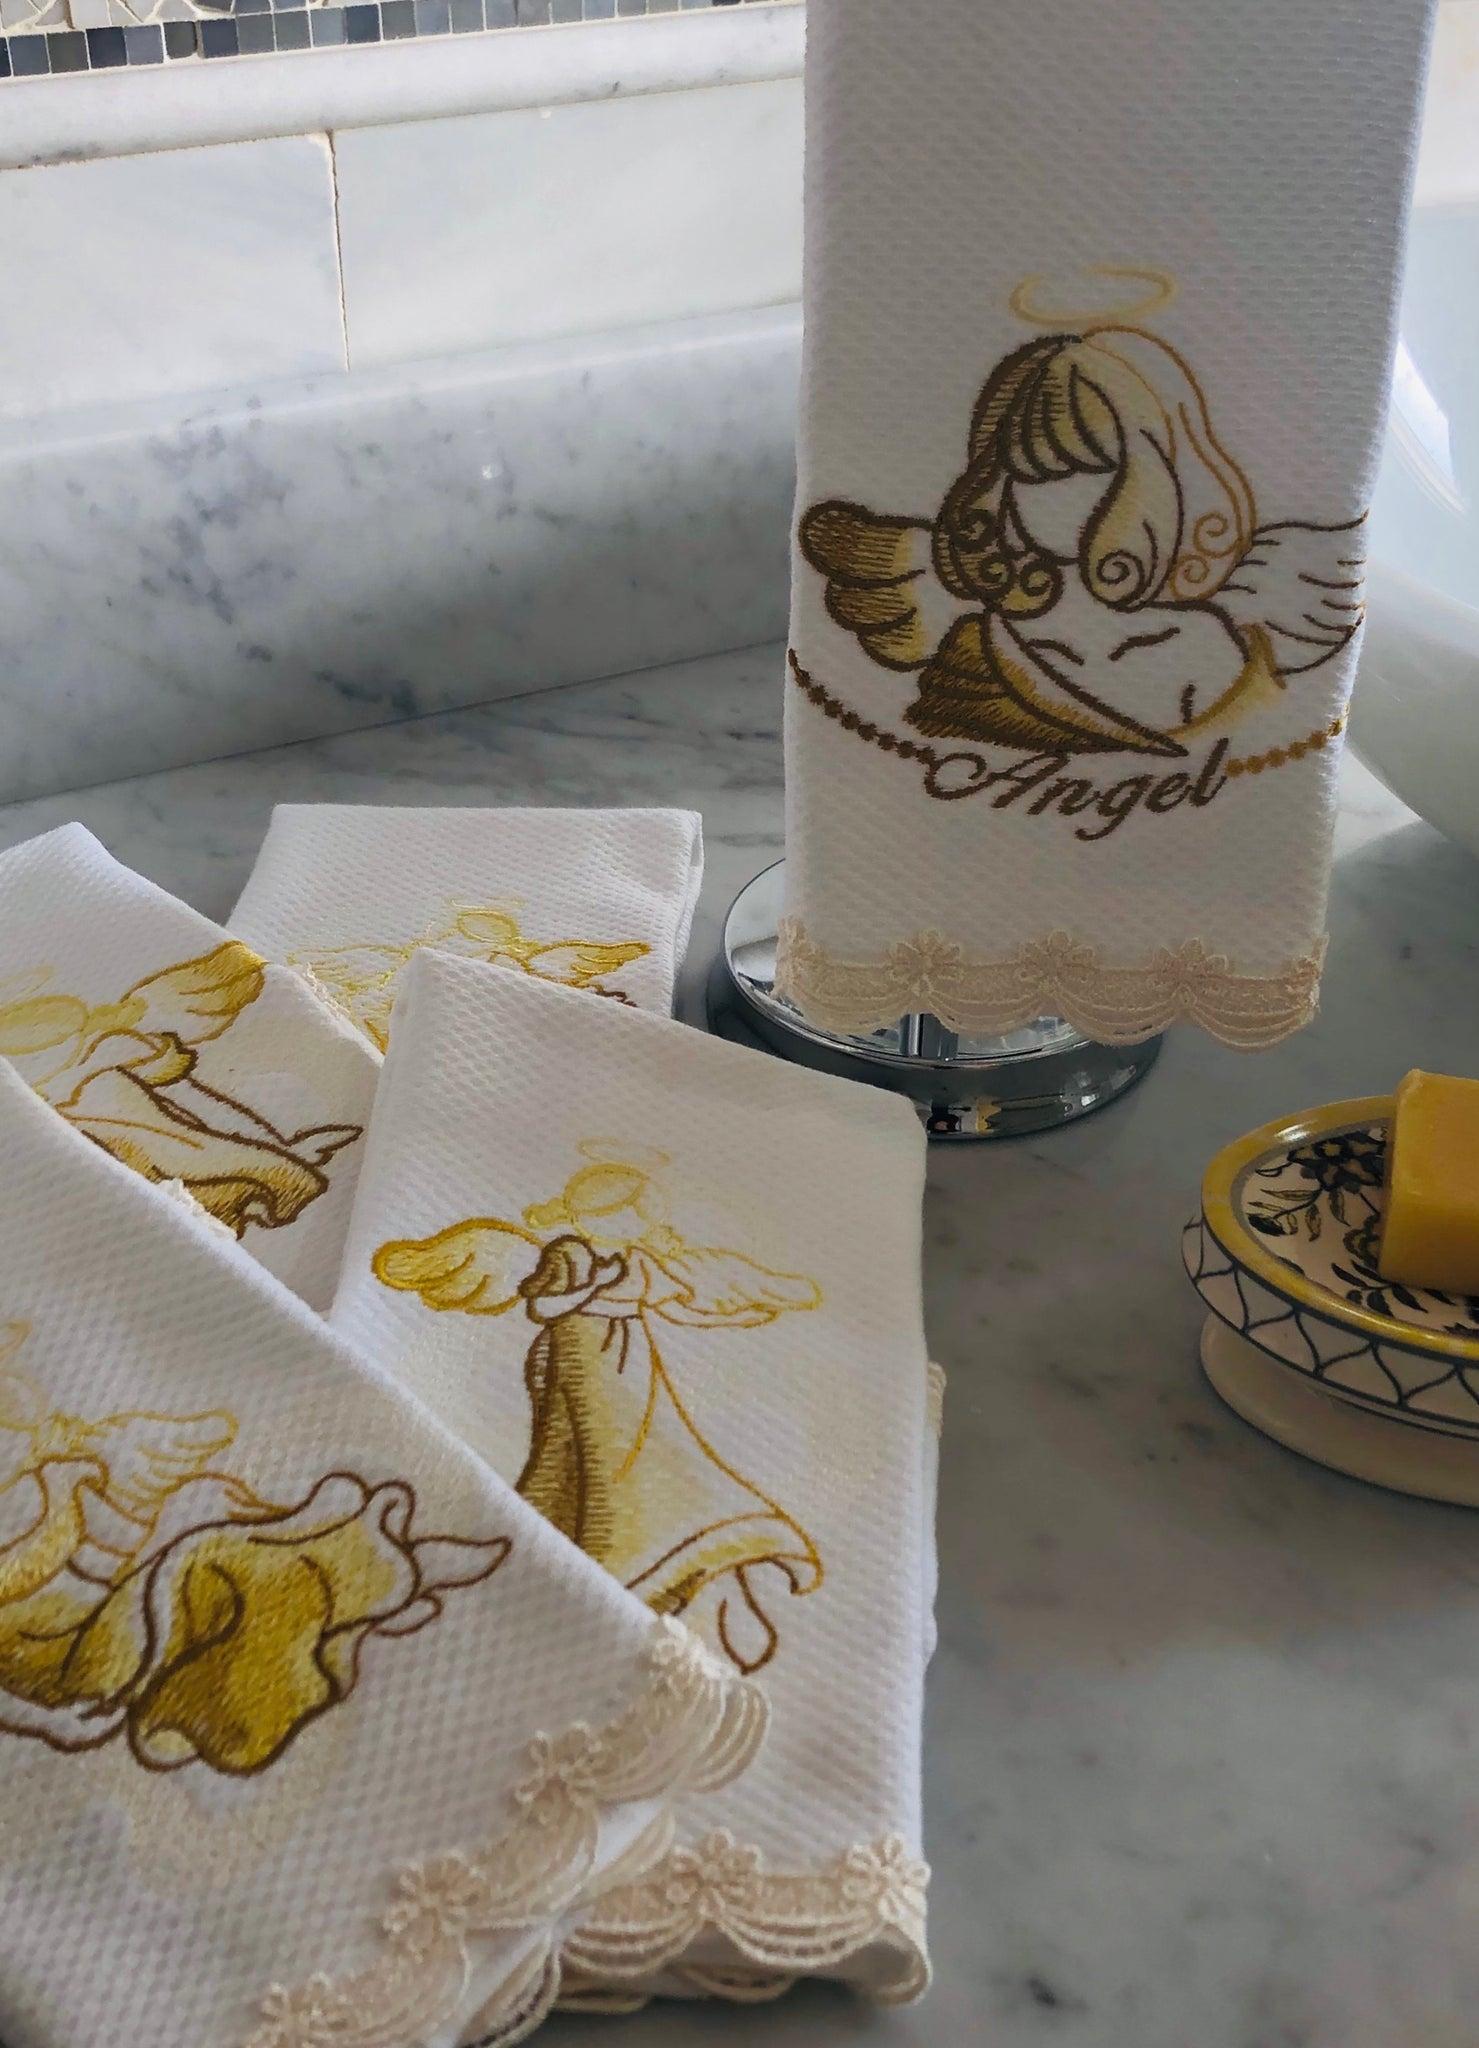 five set embroidered fingertip towels embroidered with angels